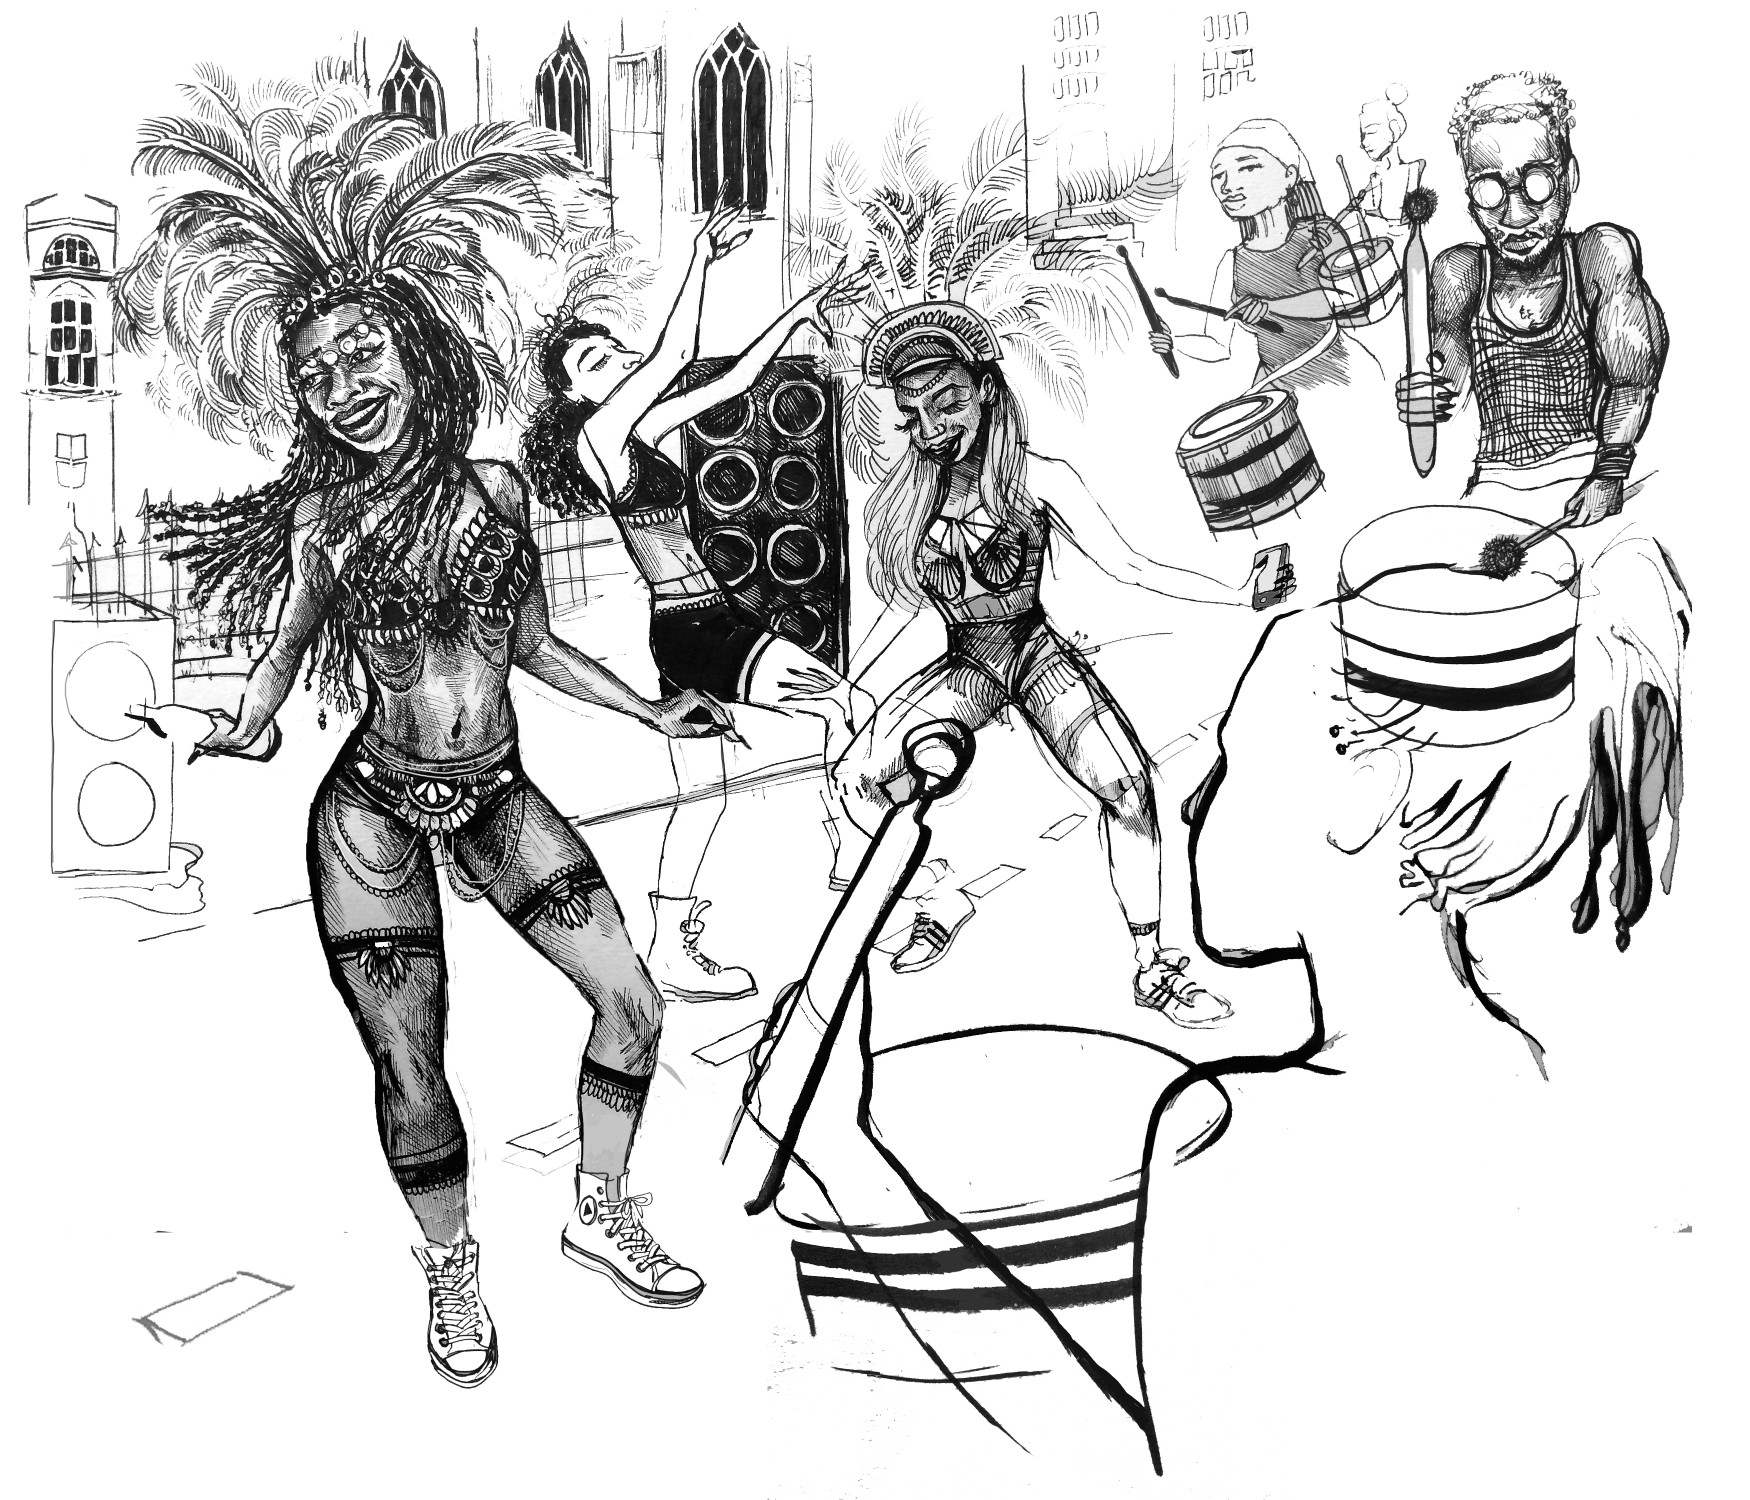 Illustration by Jasmine Thompson showing African Caribbean women dancing in traditional carnival outfits and headdresses, surrounded by sound systems and people playing the drums